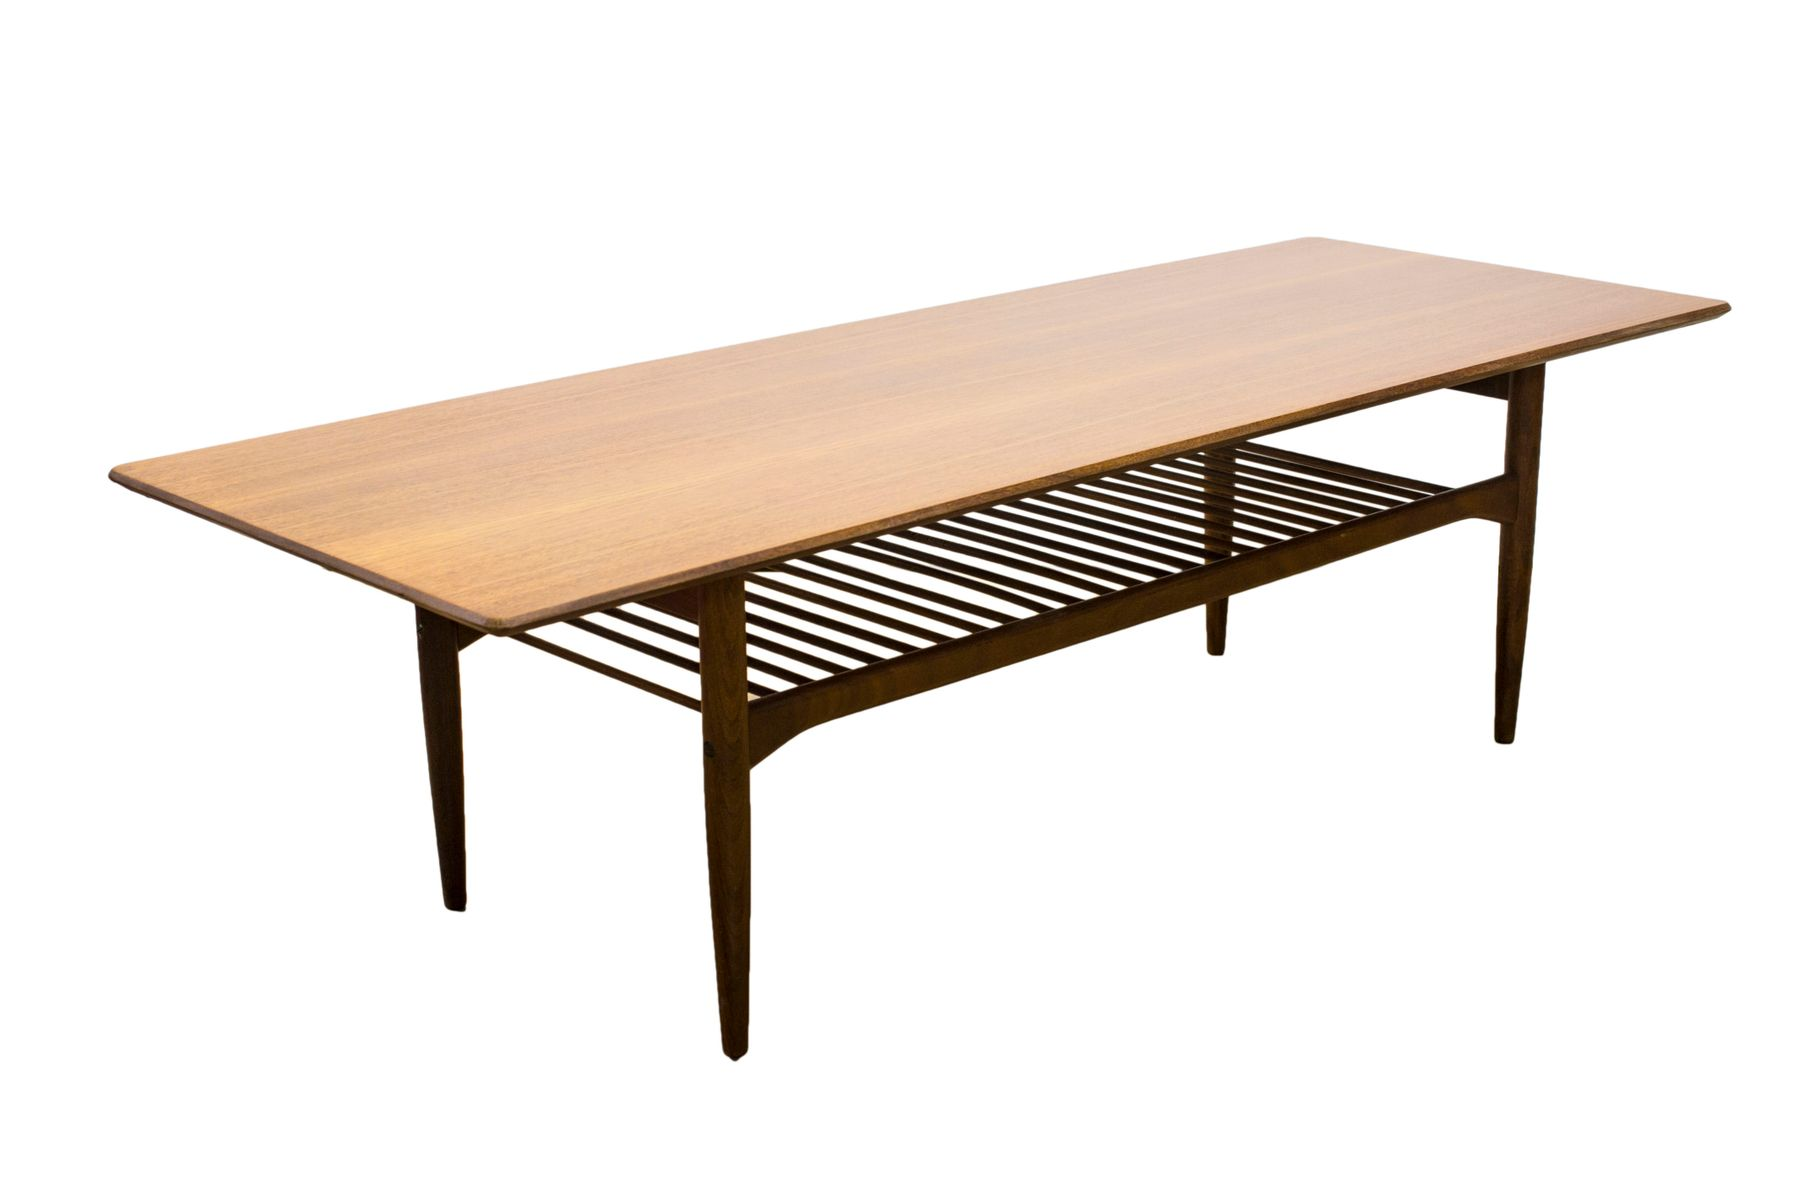 Mid Century Scandinavian Range Teak Coffee Table by Ib Kofod